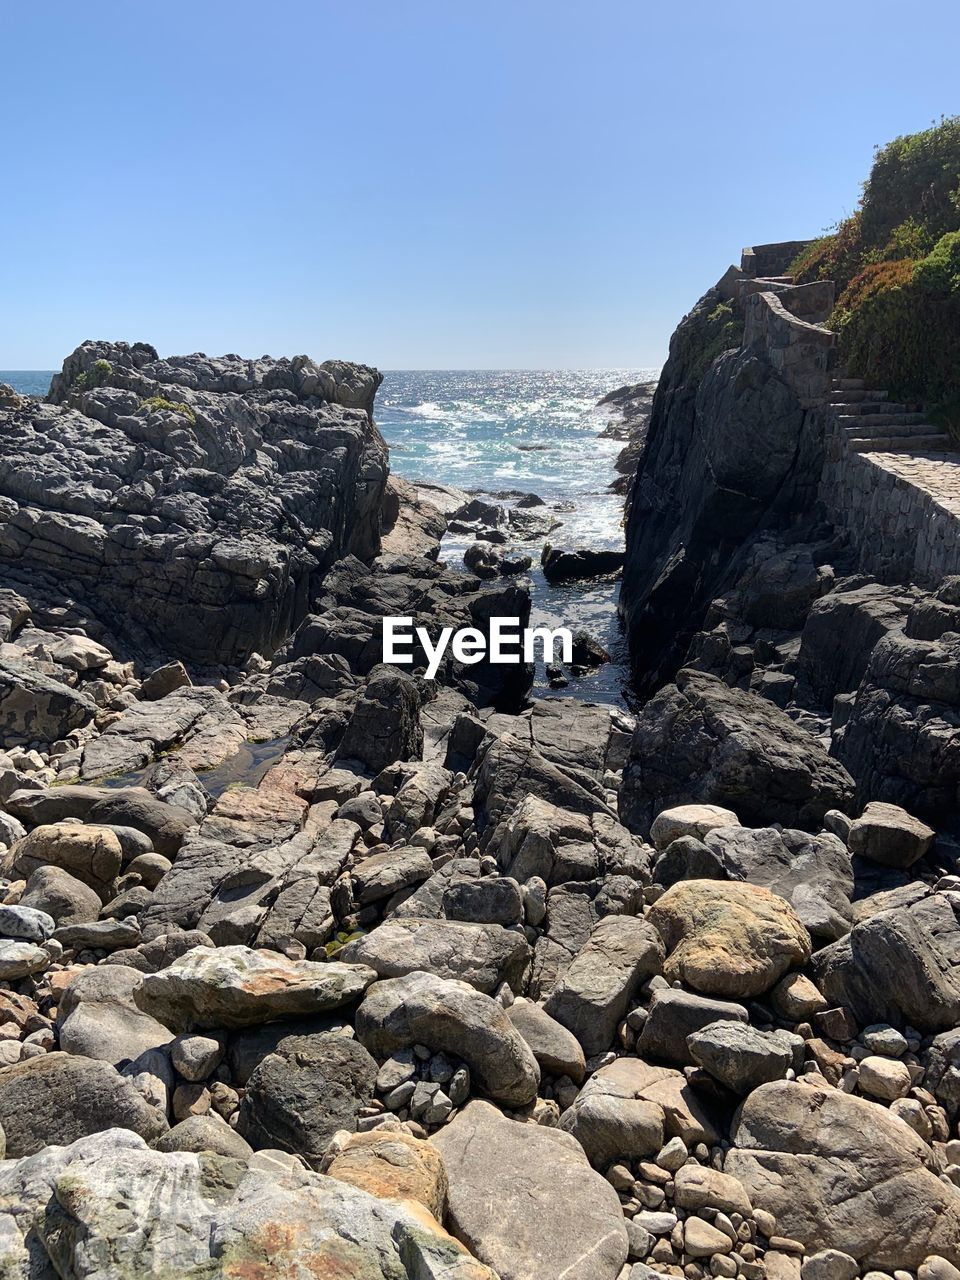 rock, water, rock - object, solid, sea, sky, land, beauty in nature, nature, beach, clear sky, day, scenics - nature, no people, motion, rock formation, tranquility, non-urban scene, outdoors, rocky coastline, power in nature